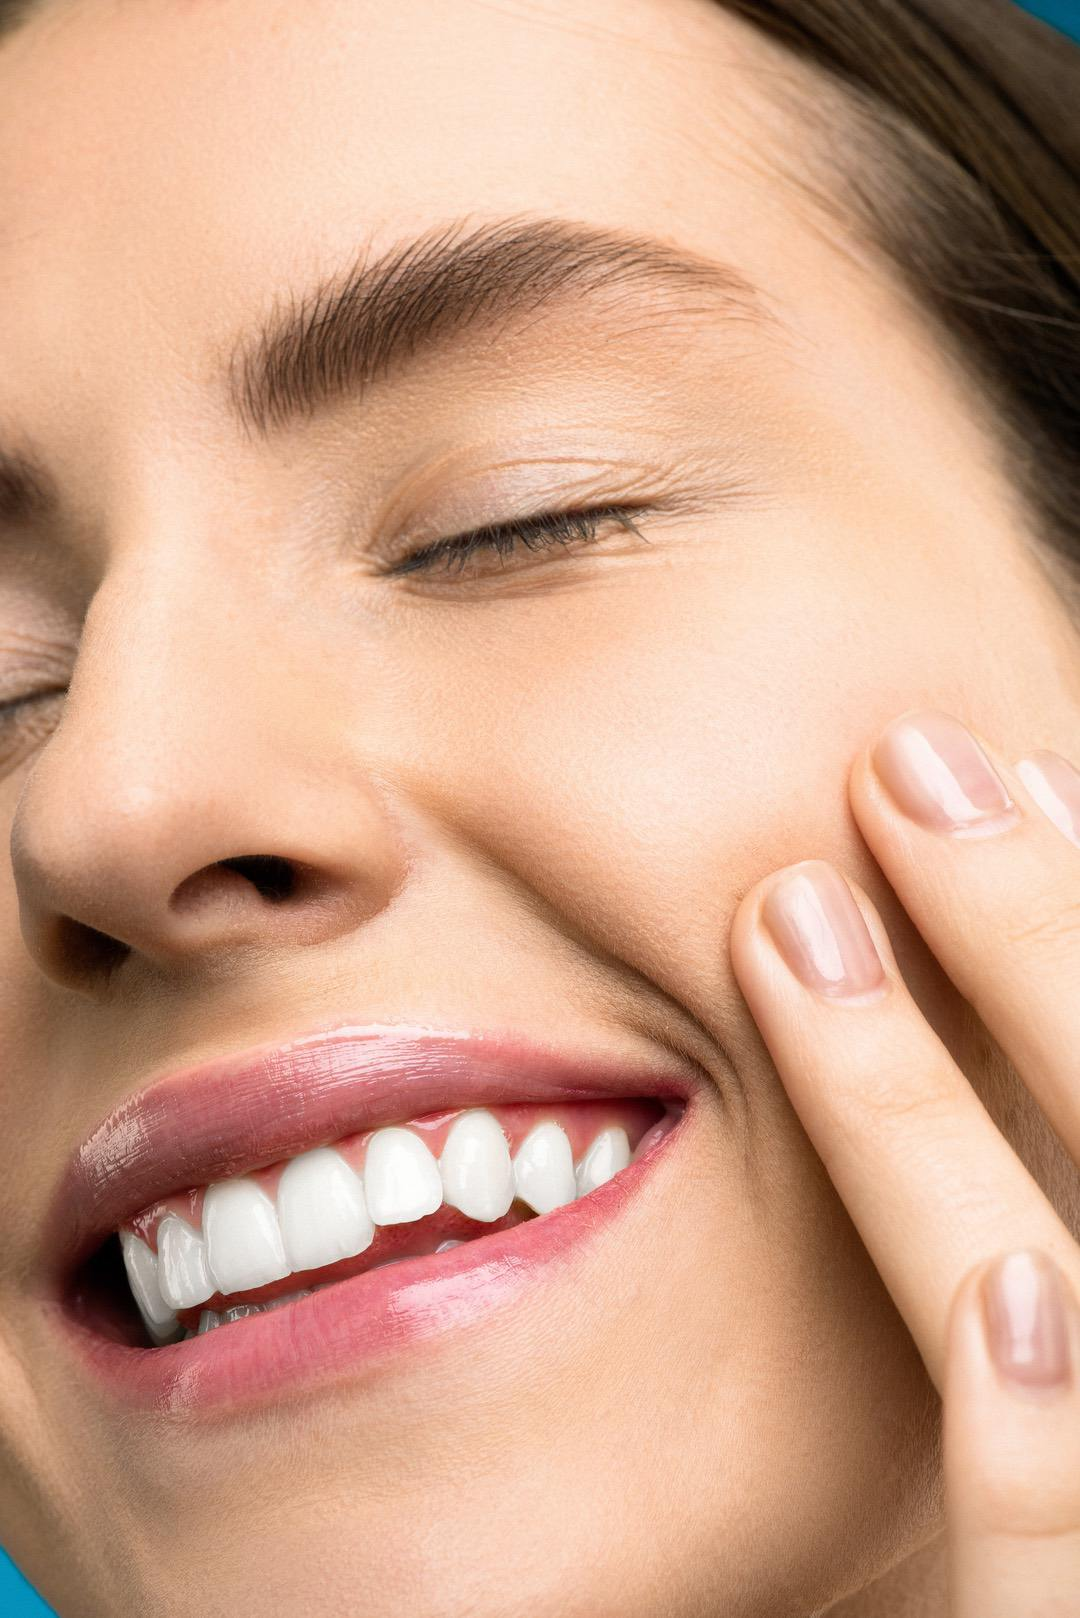 Healthy Smile with Teeth